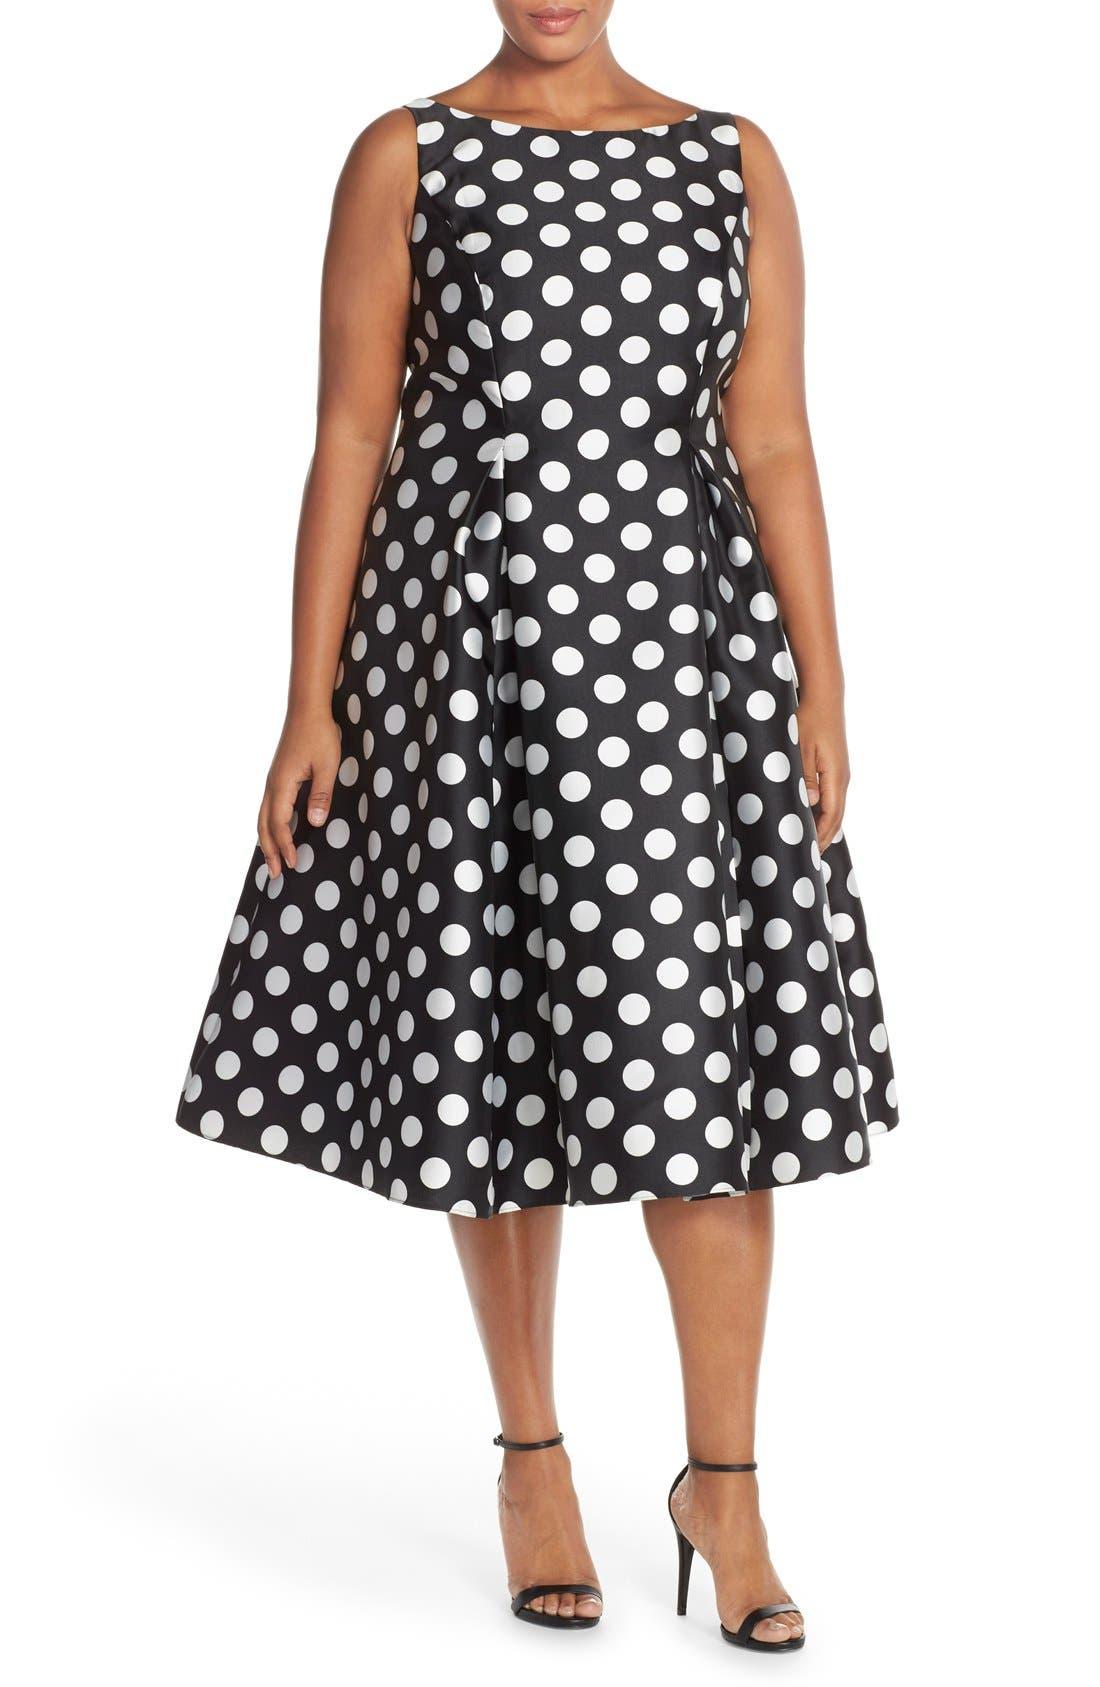 Adrianna Papell Sleeveless Mikado Fit & Flare Polka Dot Midi Dress (Plus Size)